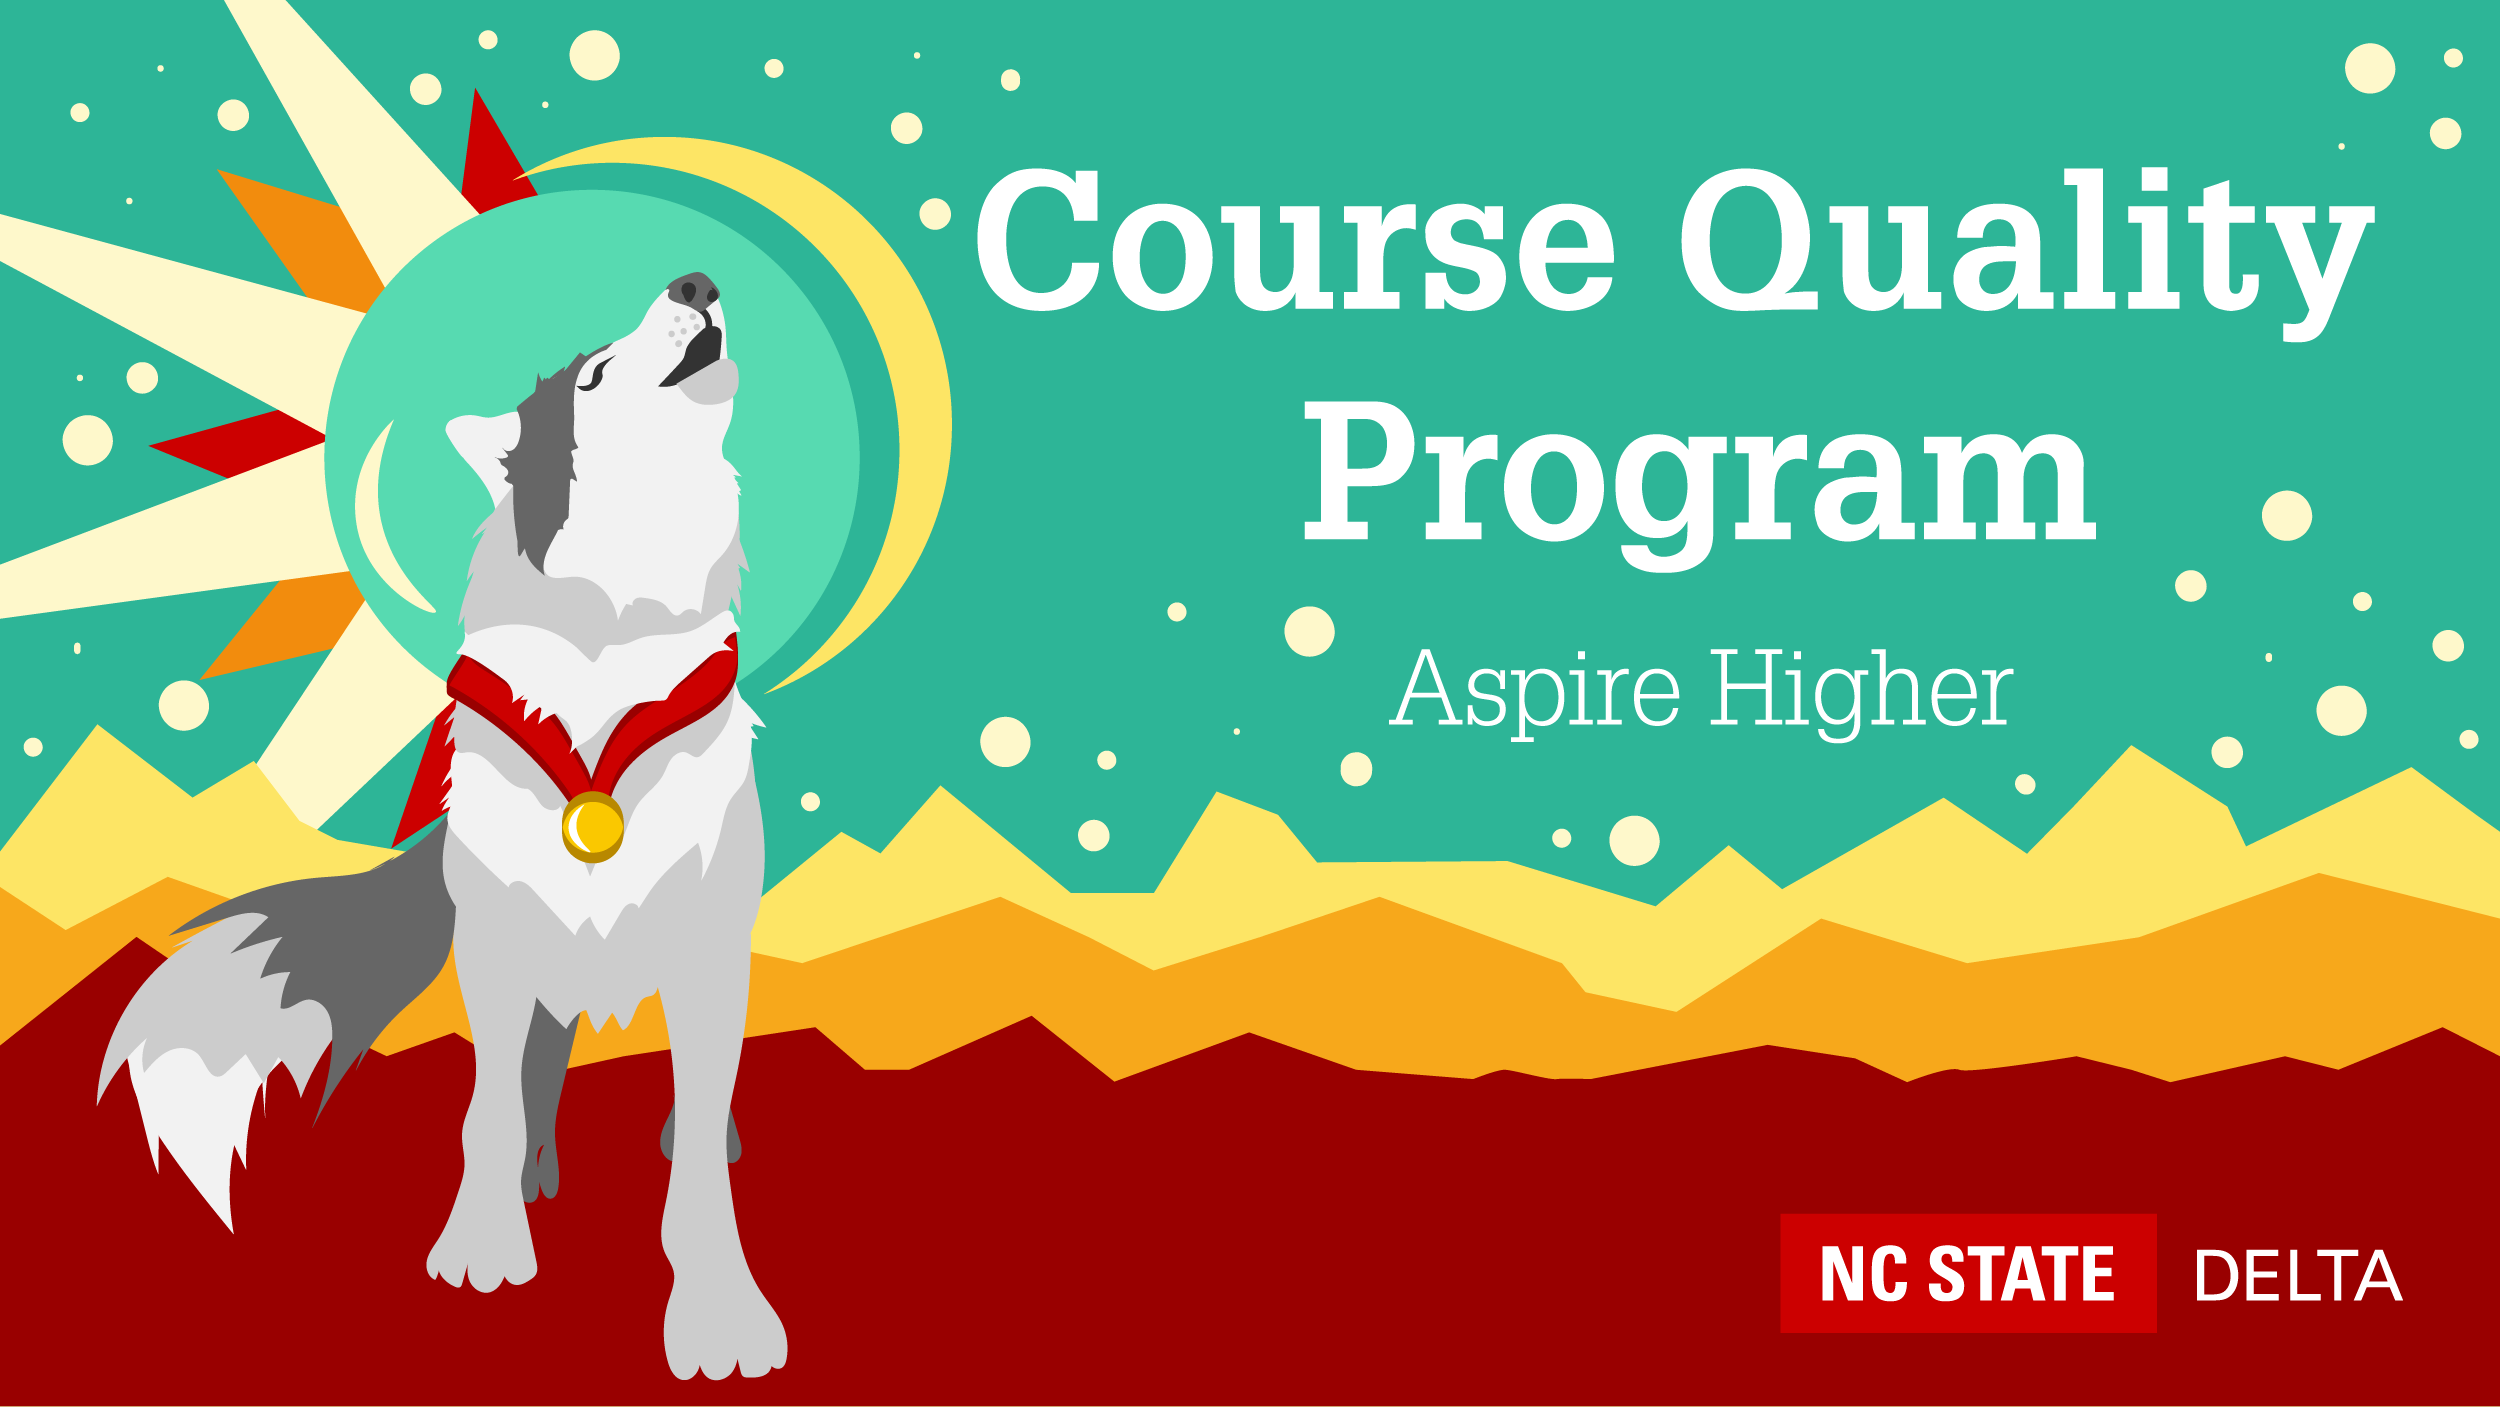 Course Quality Program, Aspire Higher